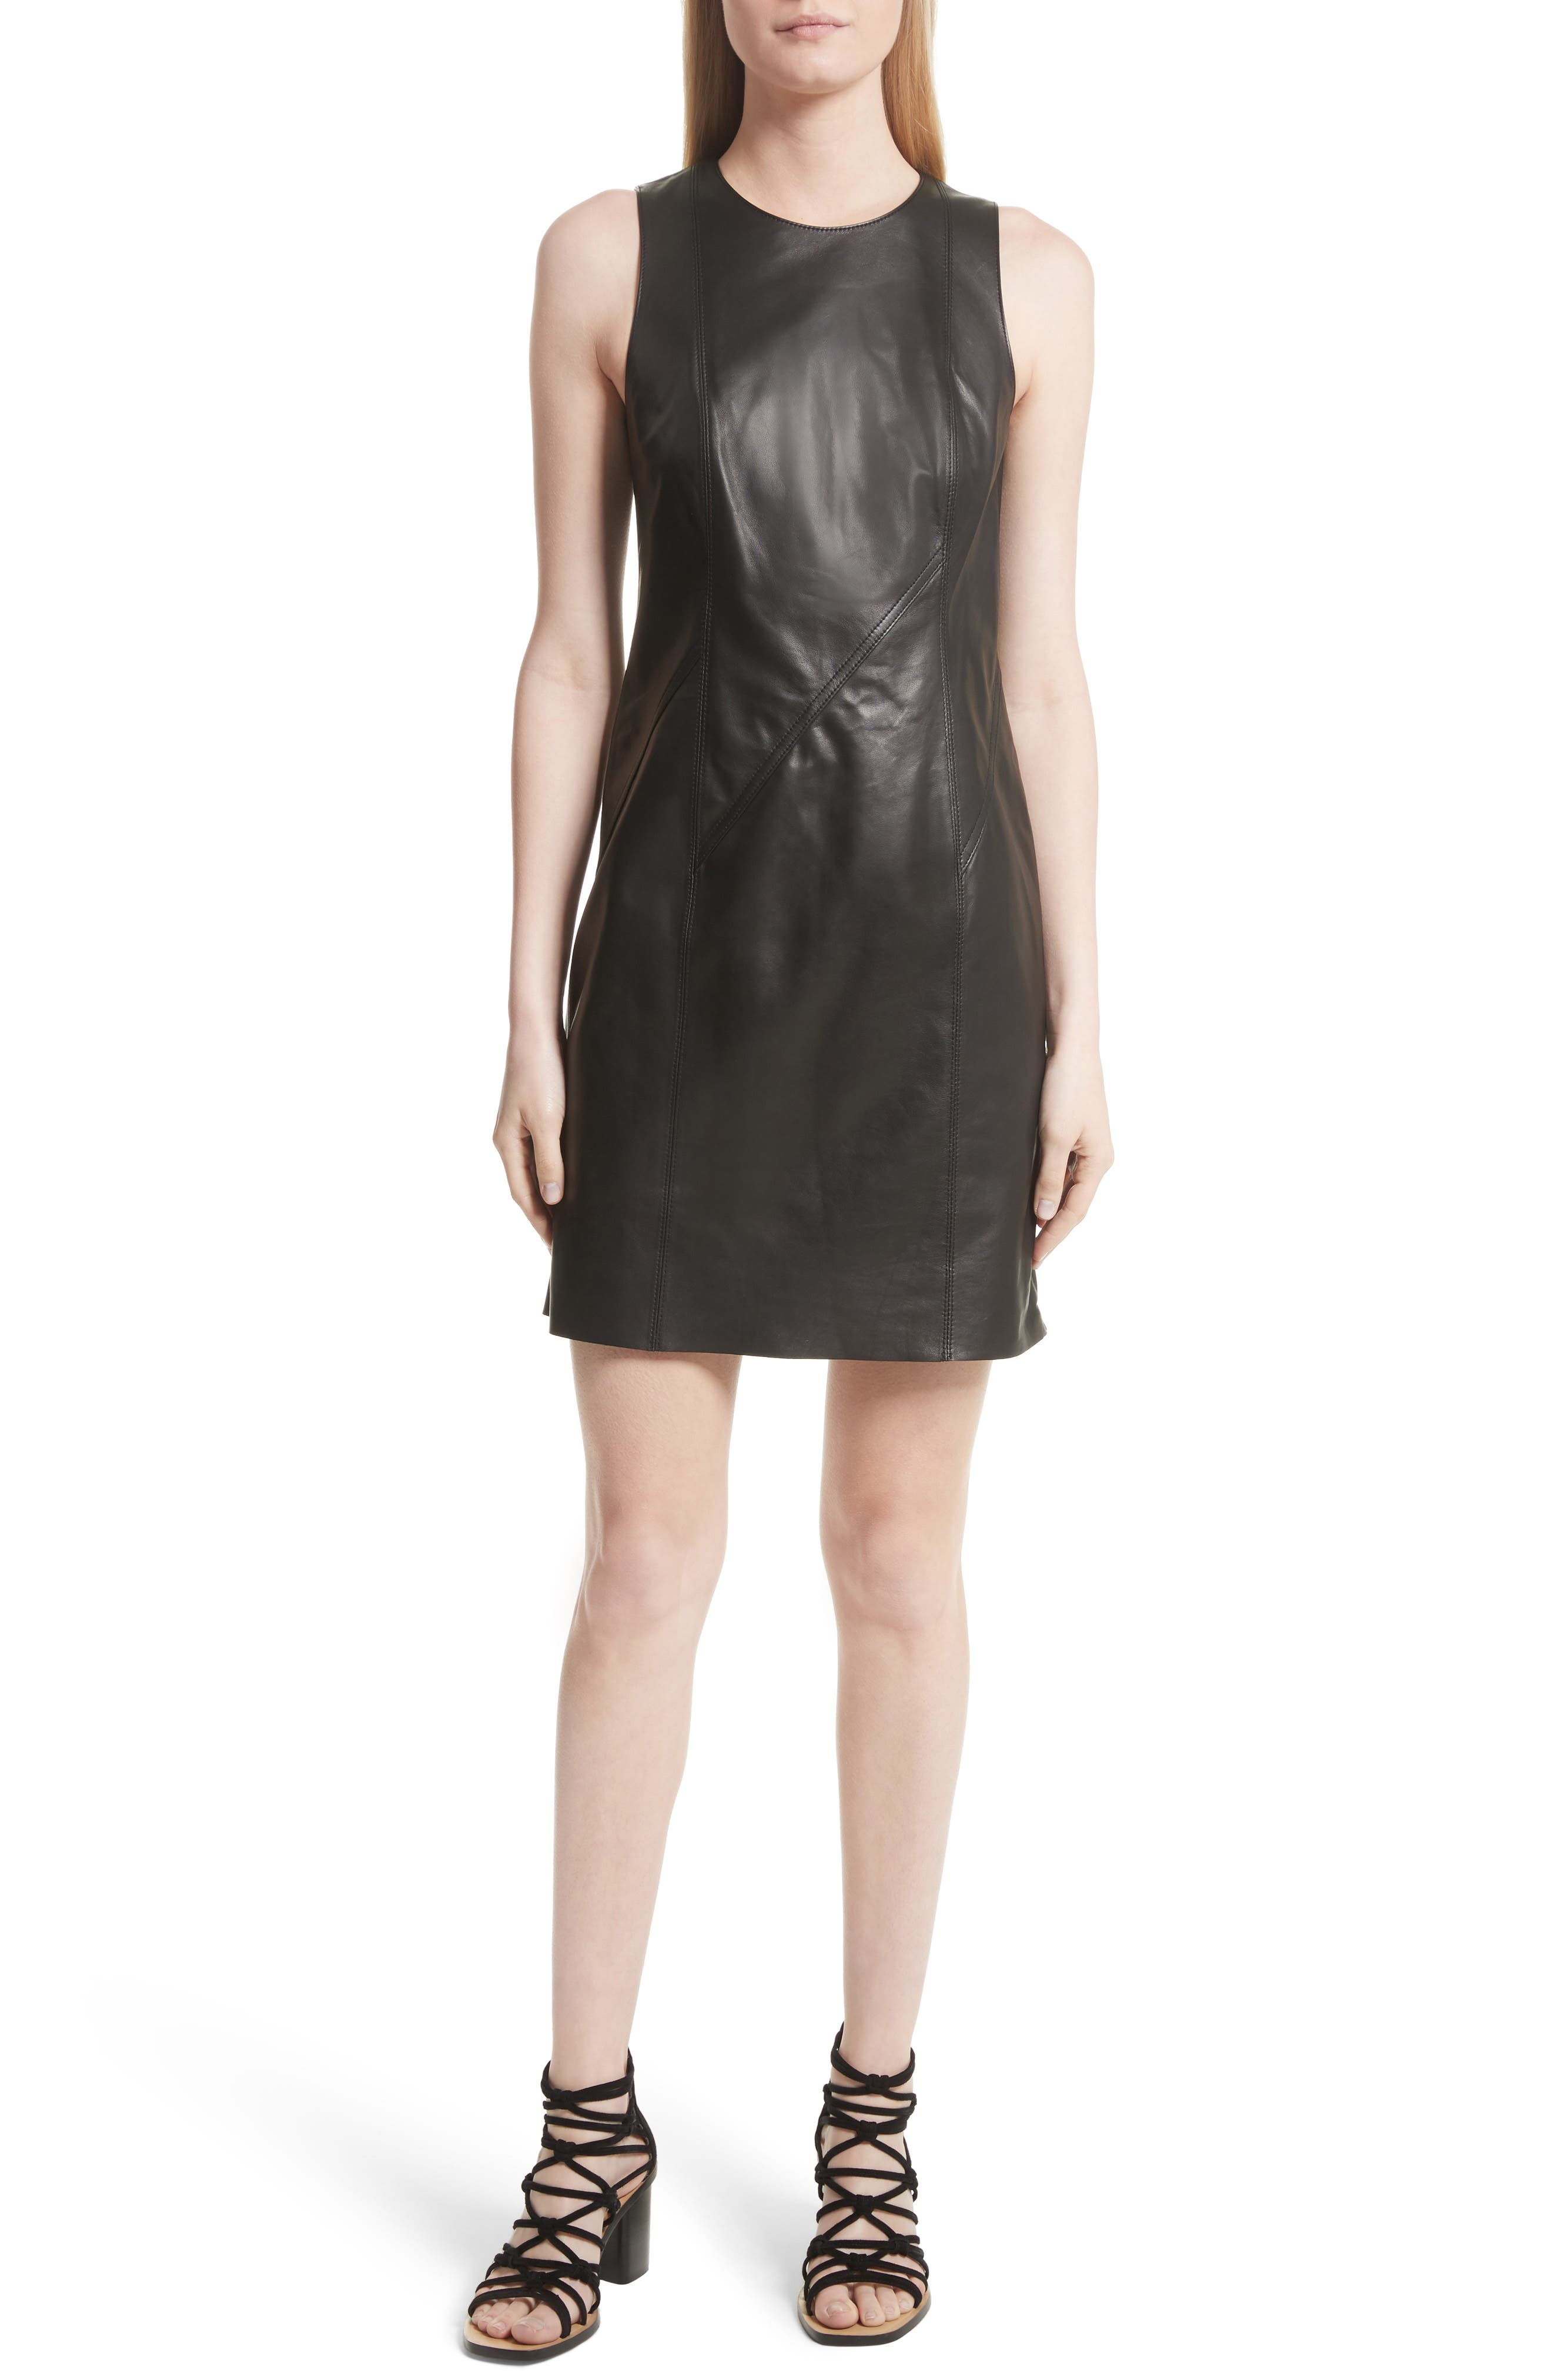 Loxley Leather Dress,                             Main thumbnail 1, color,                             001